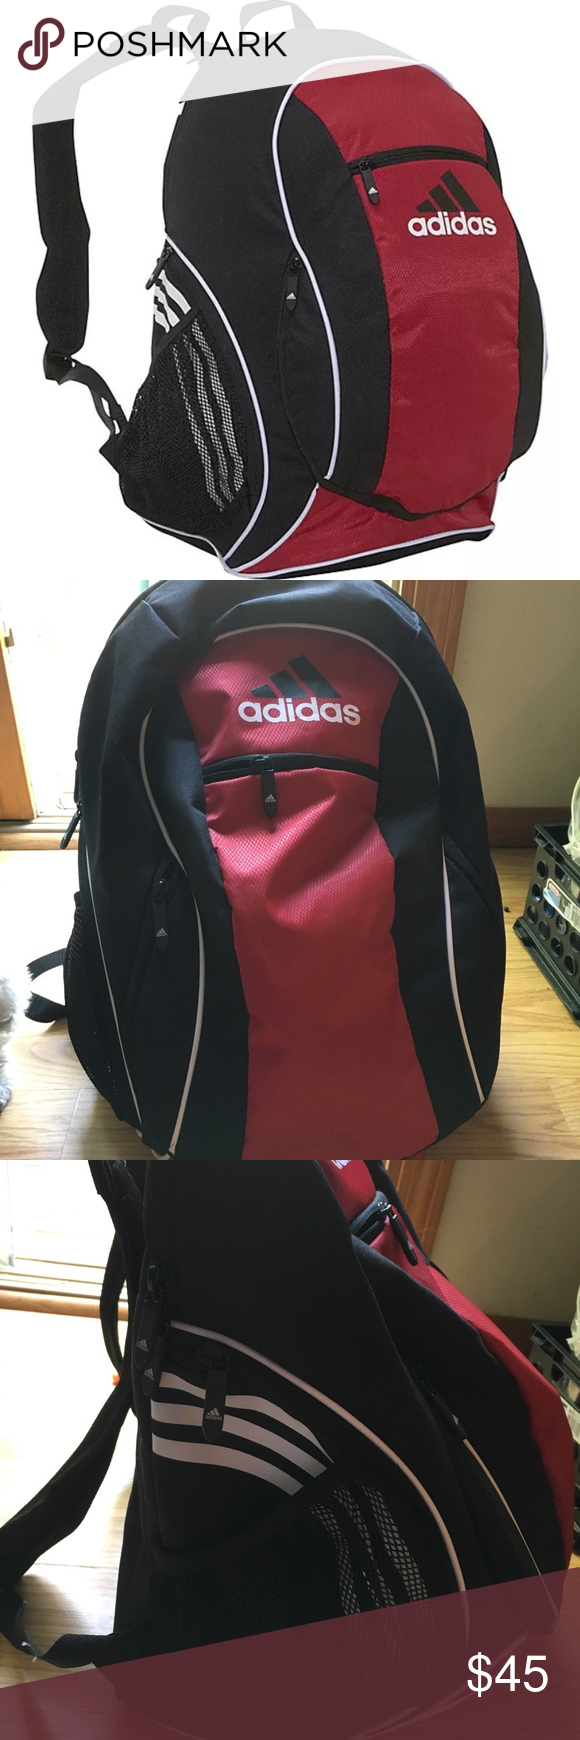 c639c7988027 Adidas Soccer Backpacks With Ball Pocket- Fenix Toulouse Handball